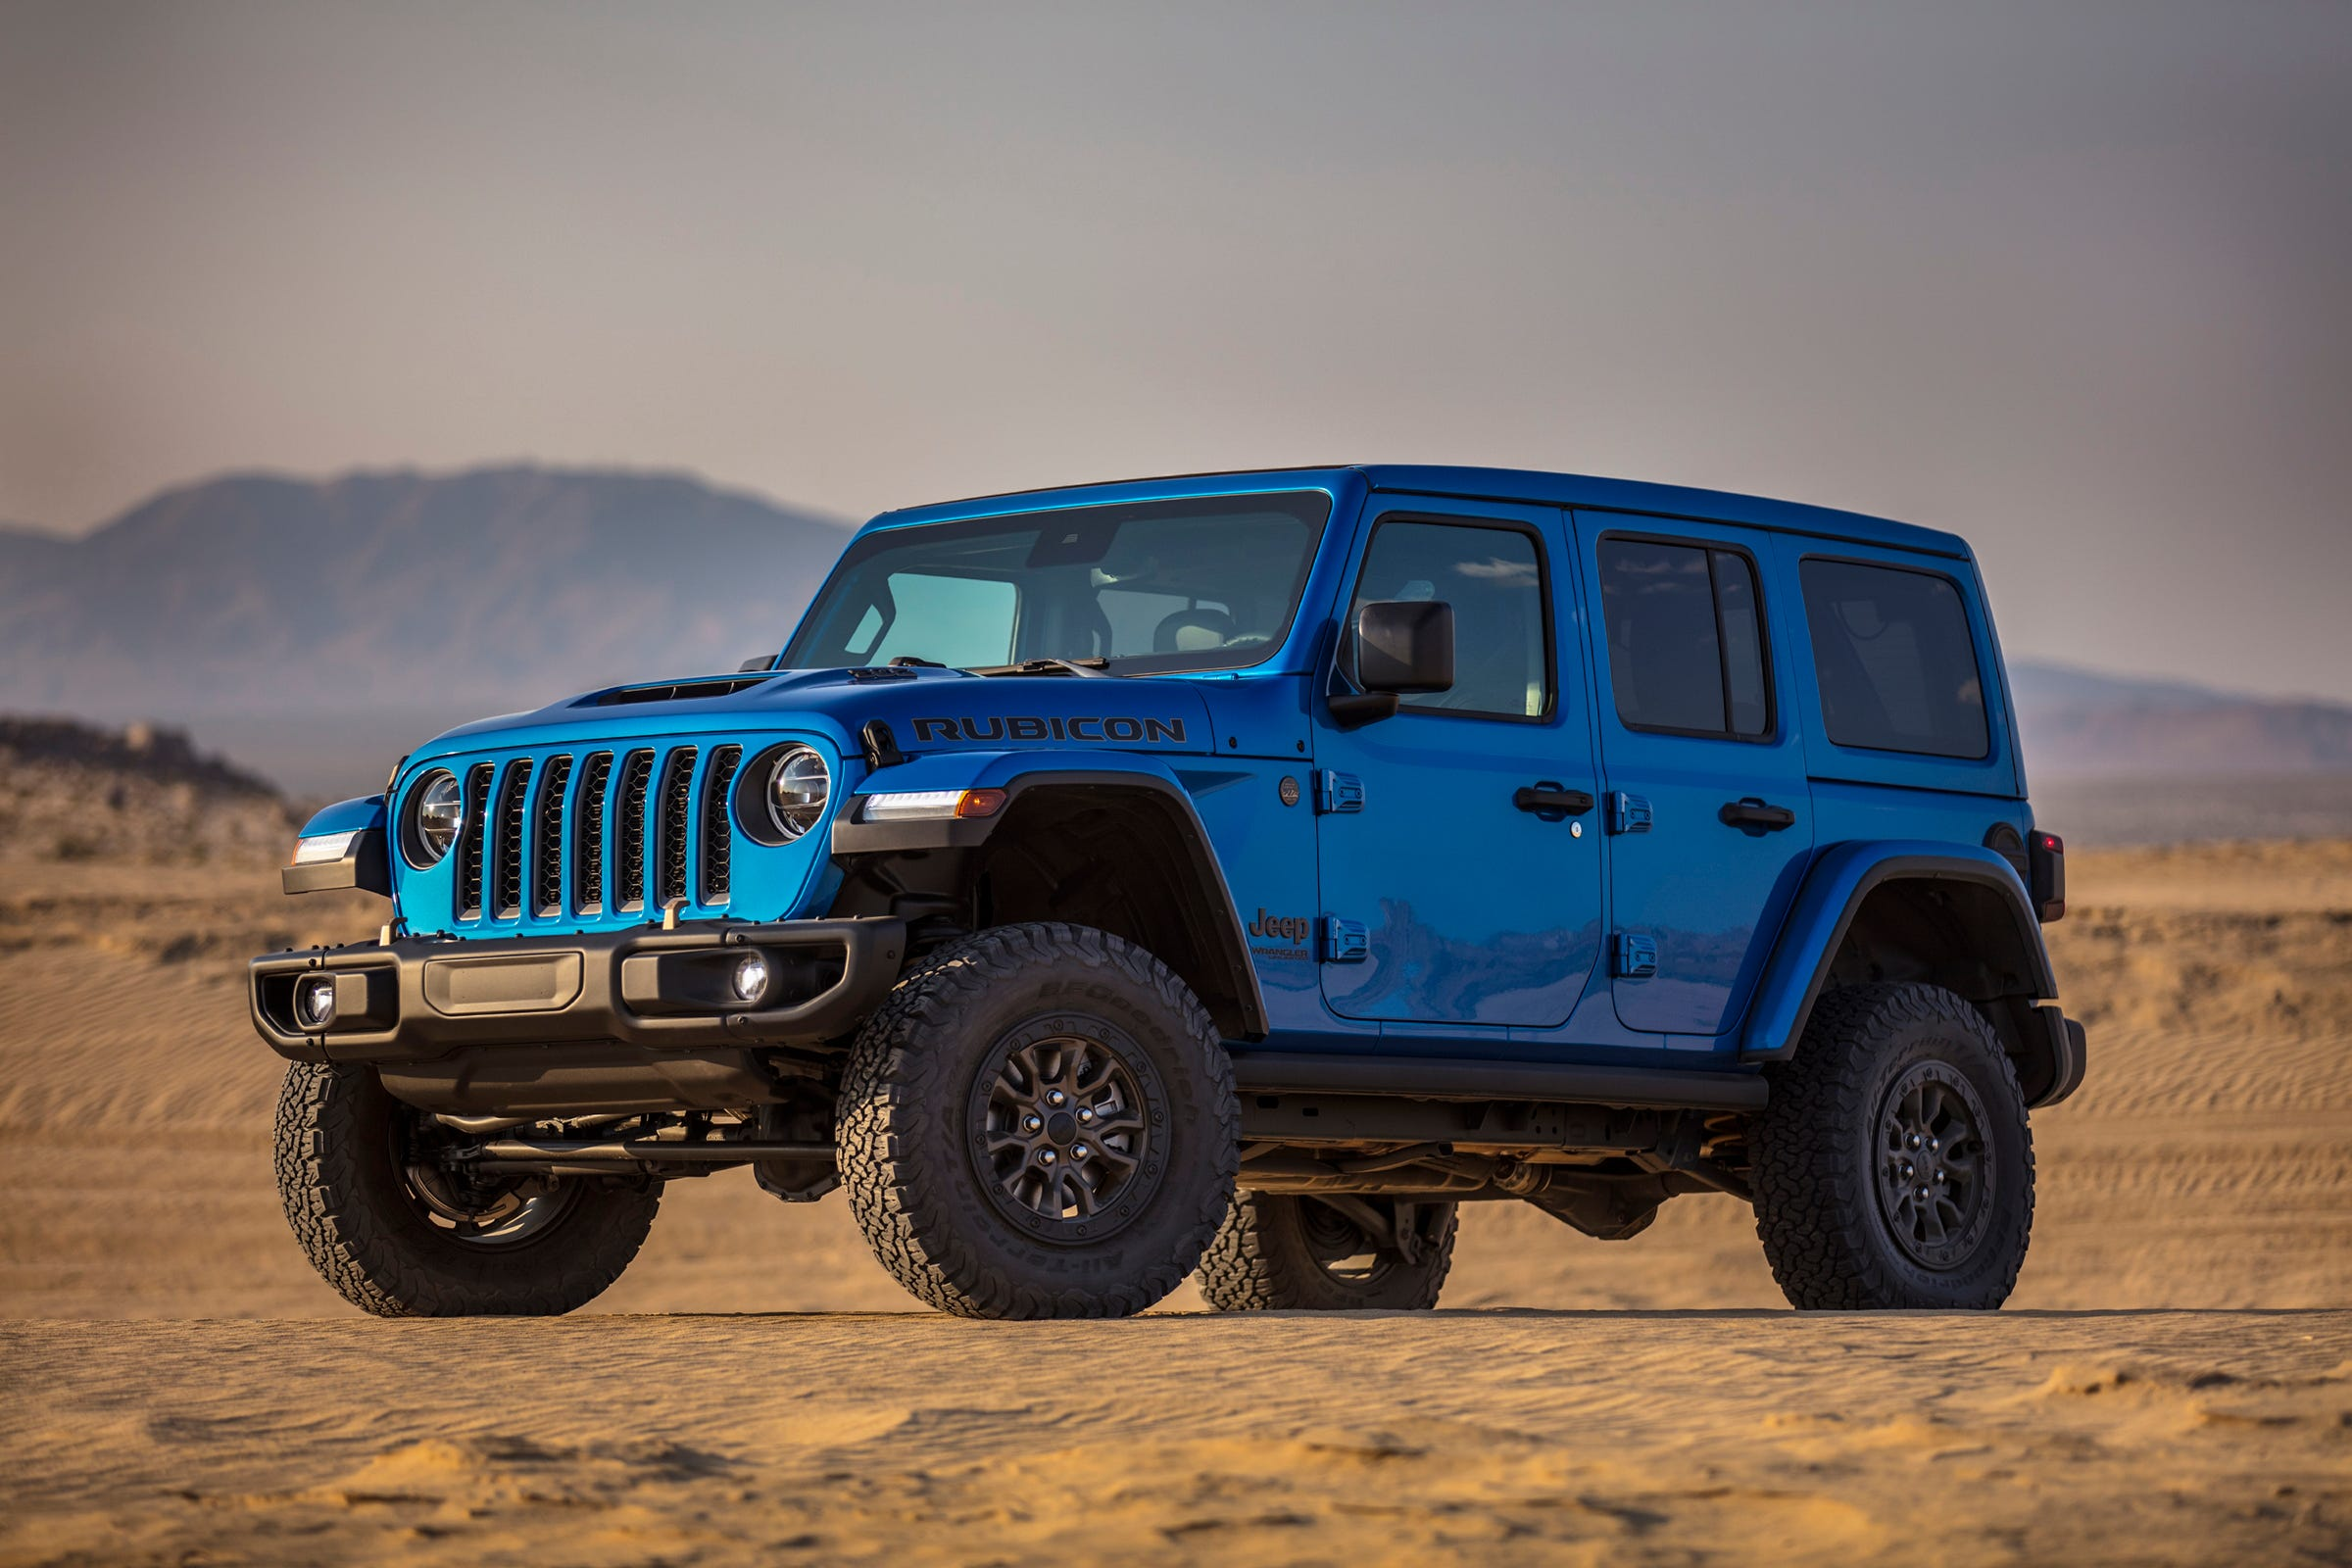 Fiat Chrysler shows off its 'badass' V8-powered Jeep Wrangler Rubicon 392